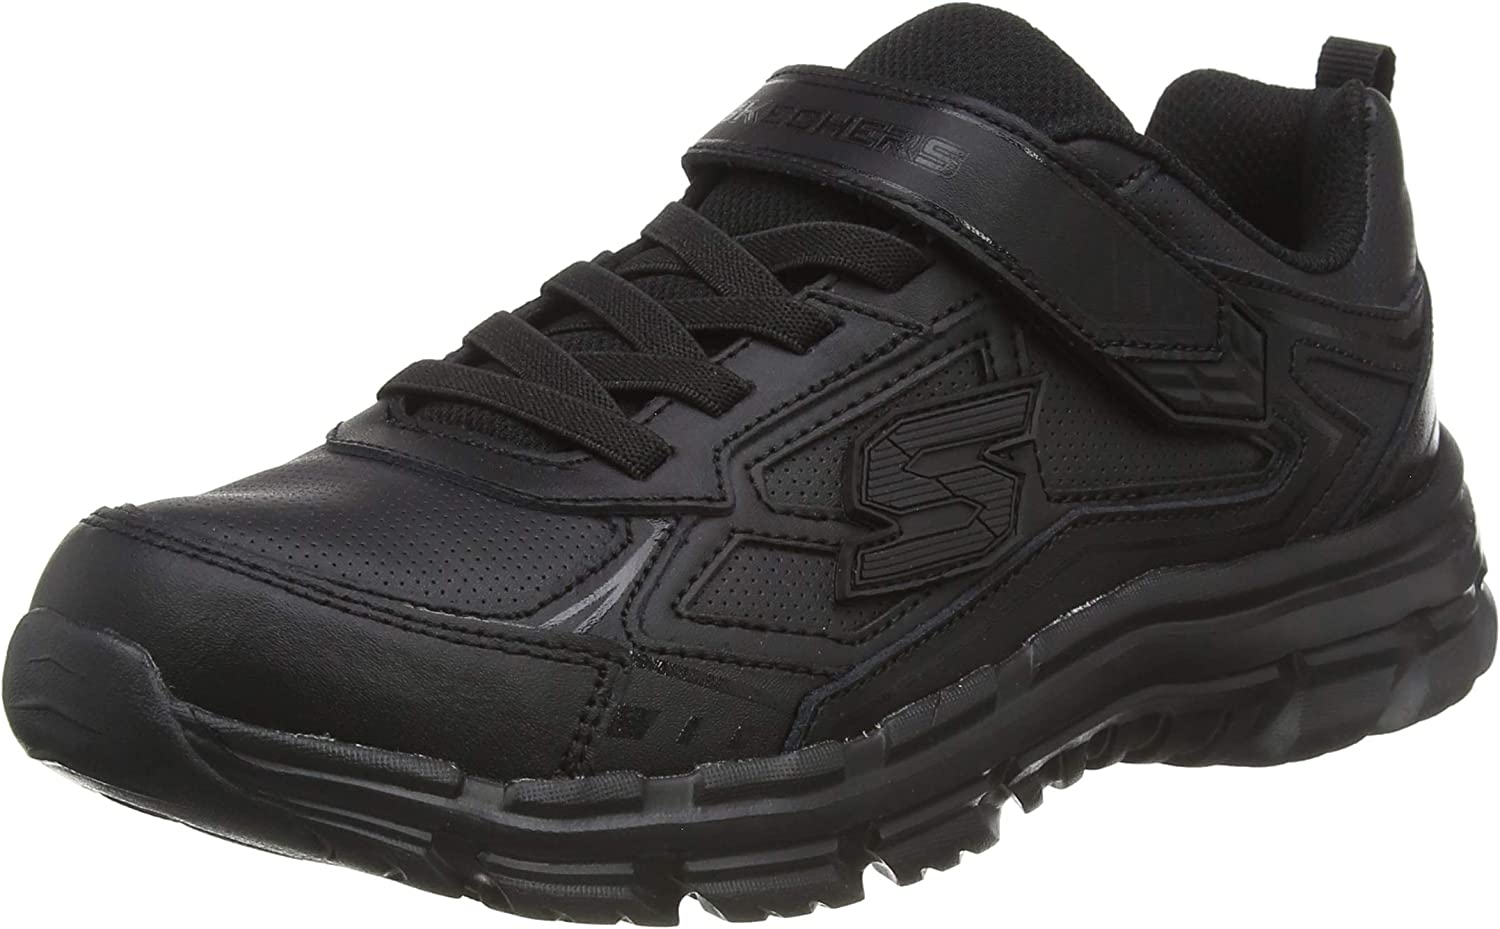 Skechers Kids OFFer Unisex-Child Quantity limited Sneaker NITRATE-95357L